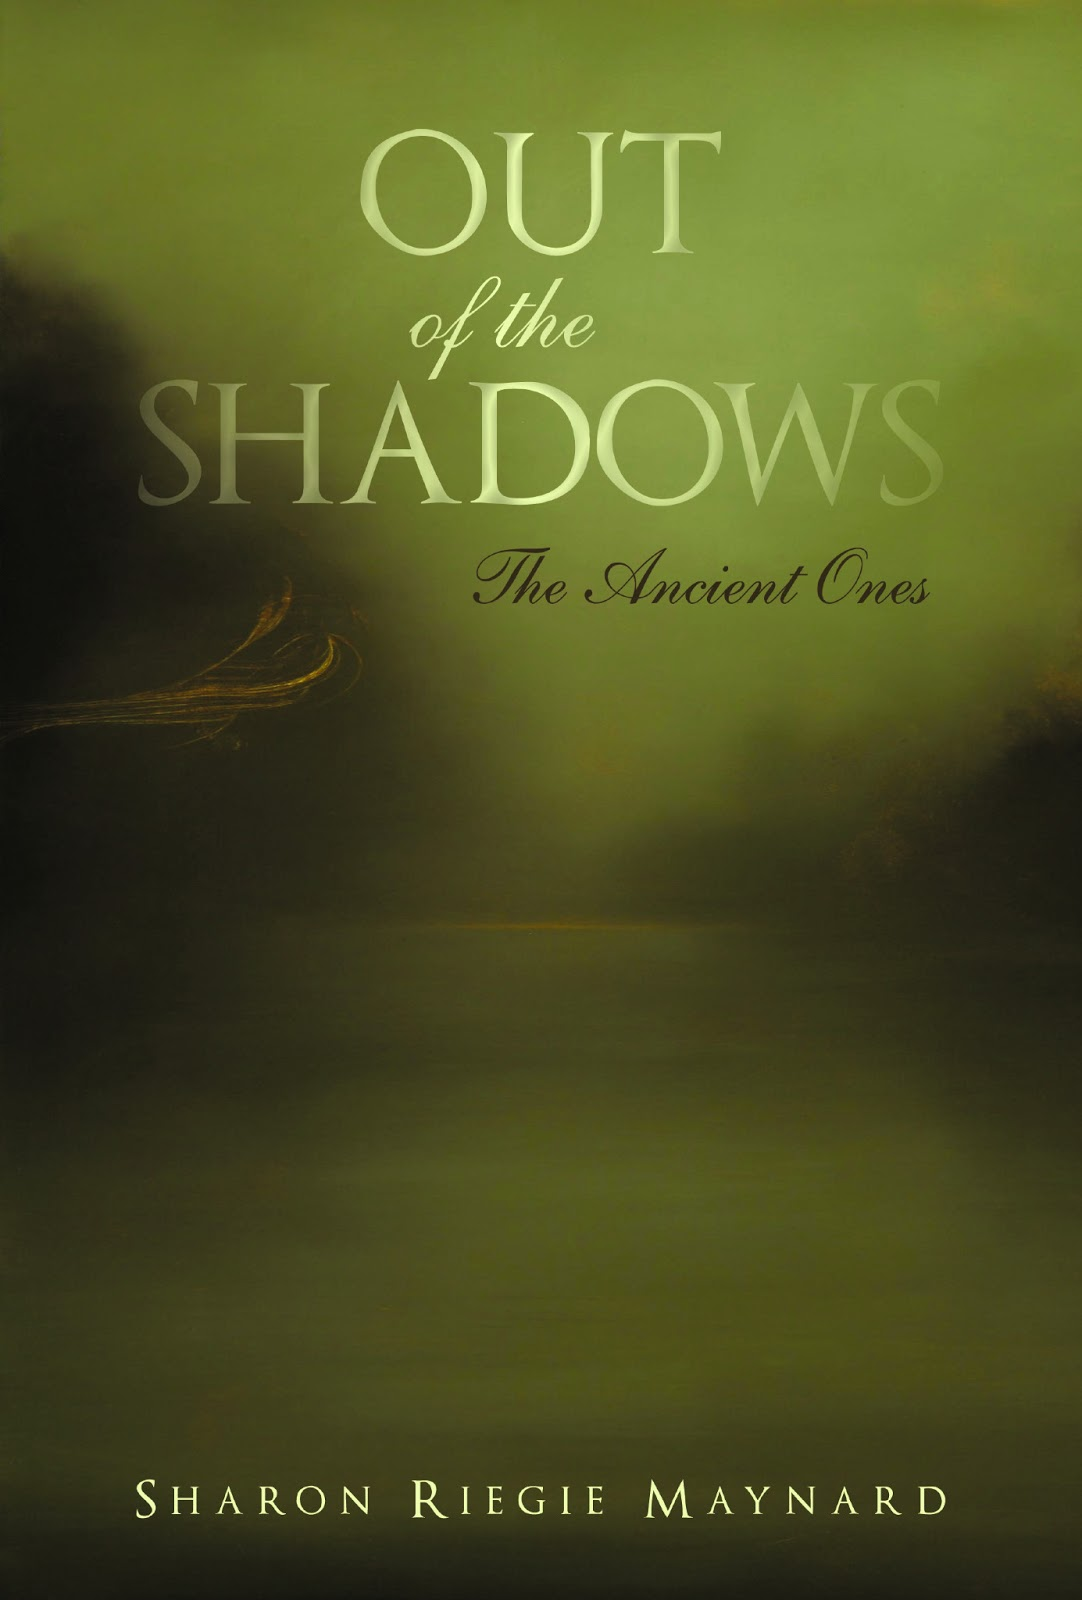 A Mystic's View     : Out of the Shadows from the Ancient Ones